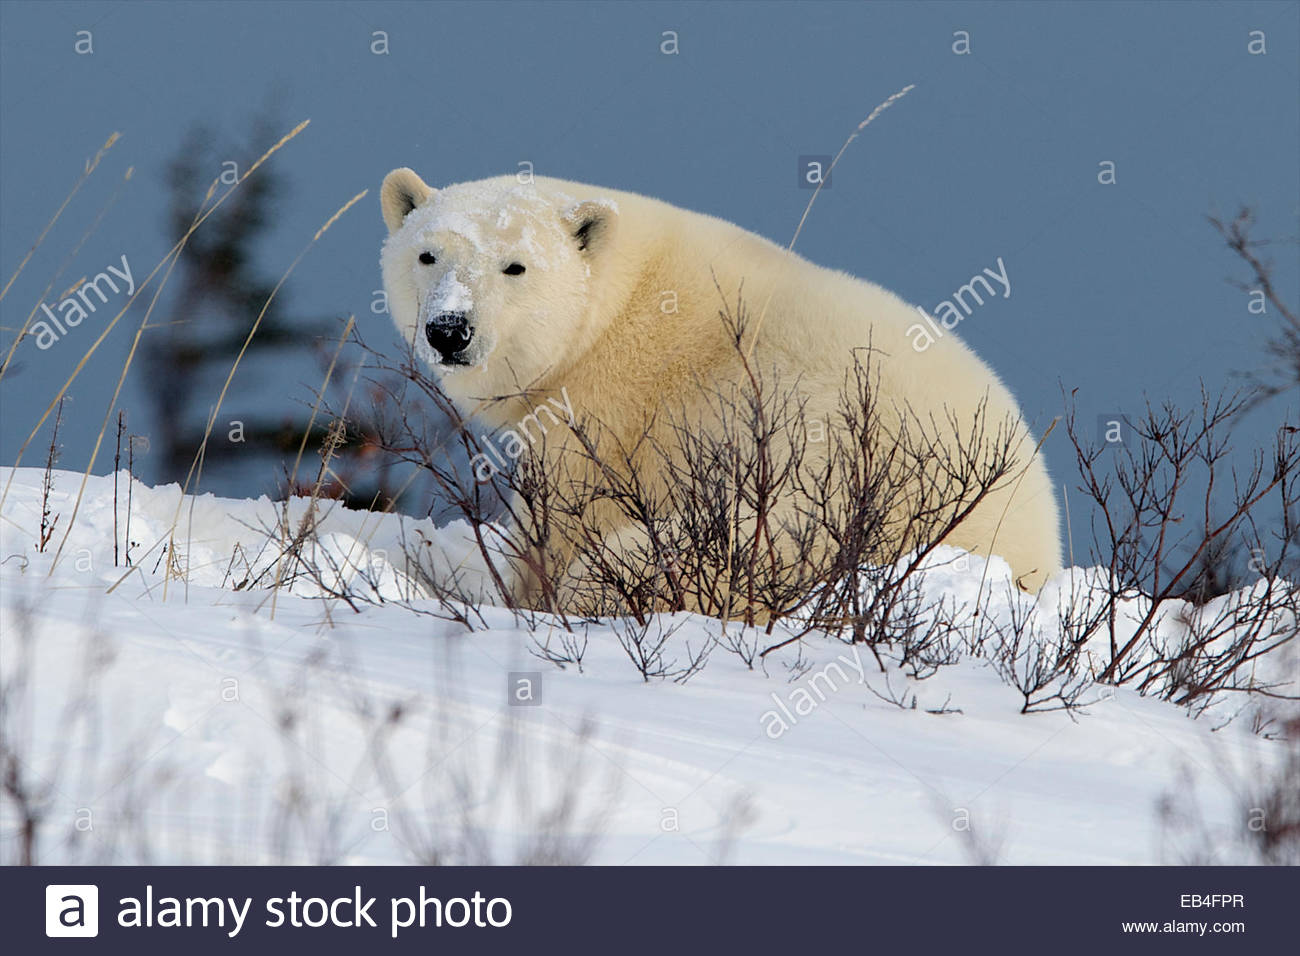 A polar take a break from its nap and looks around. - Stock Image